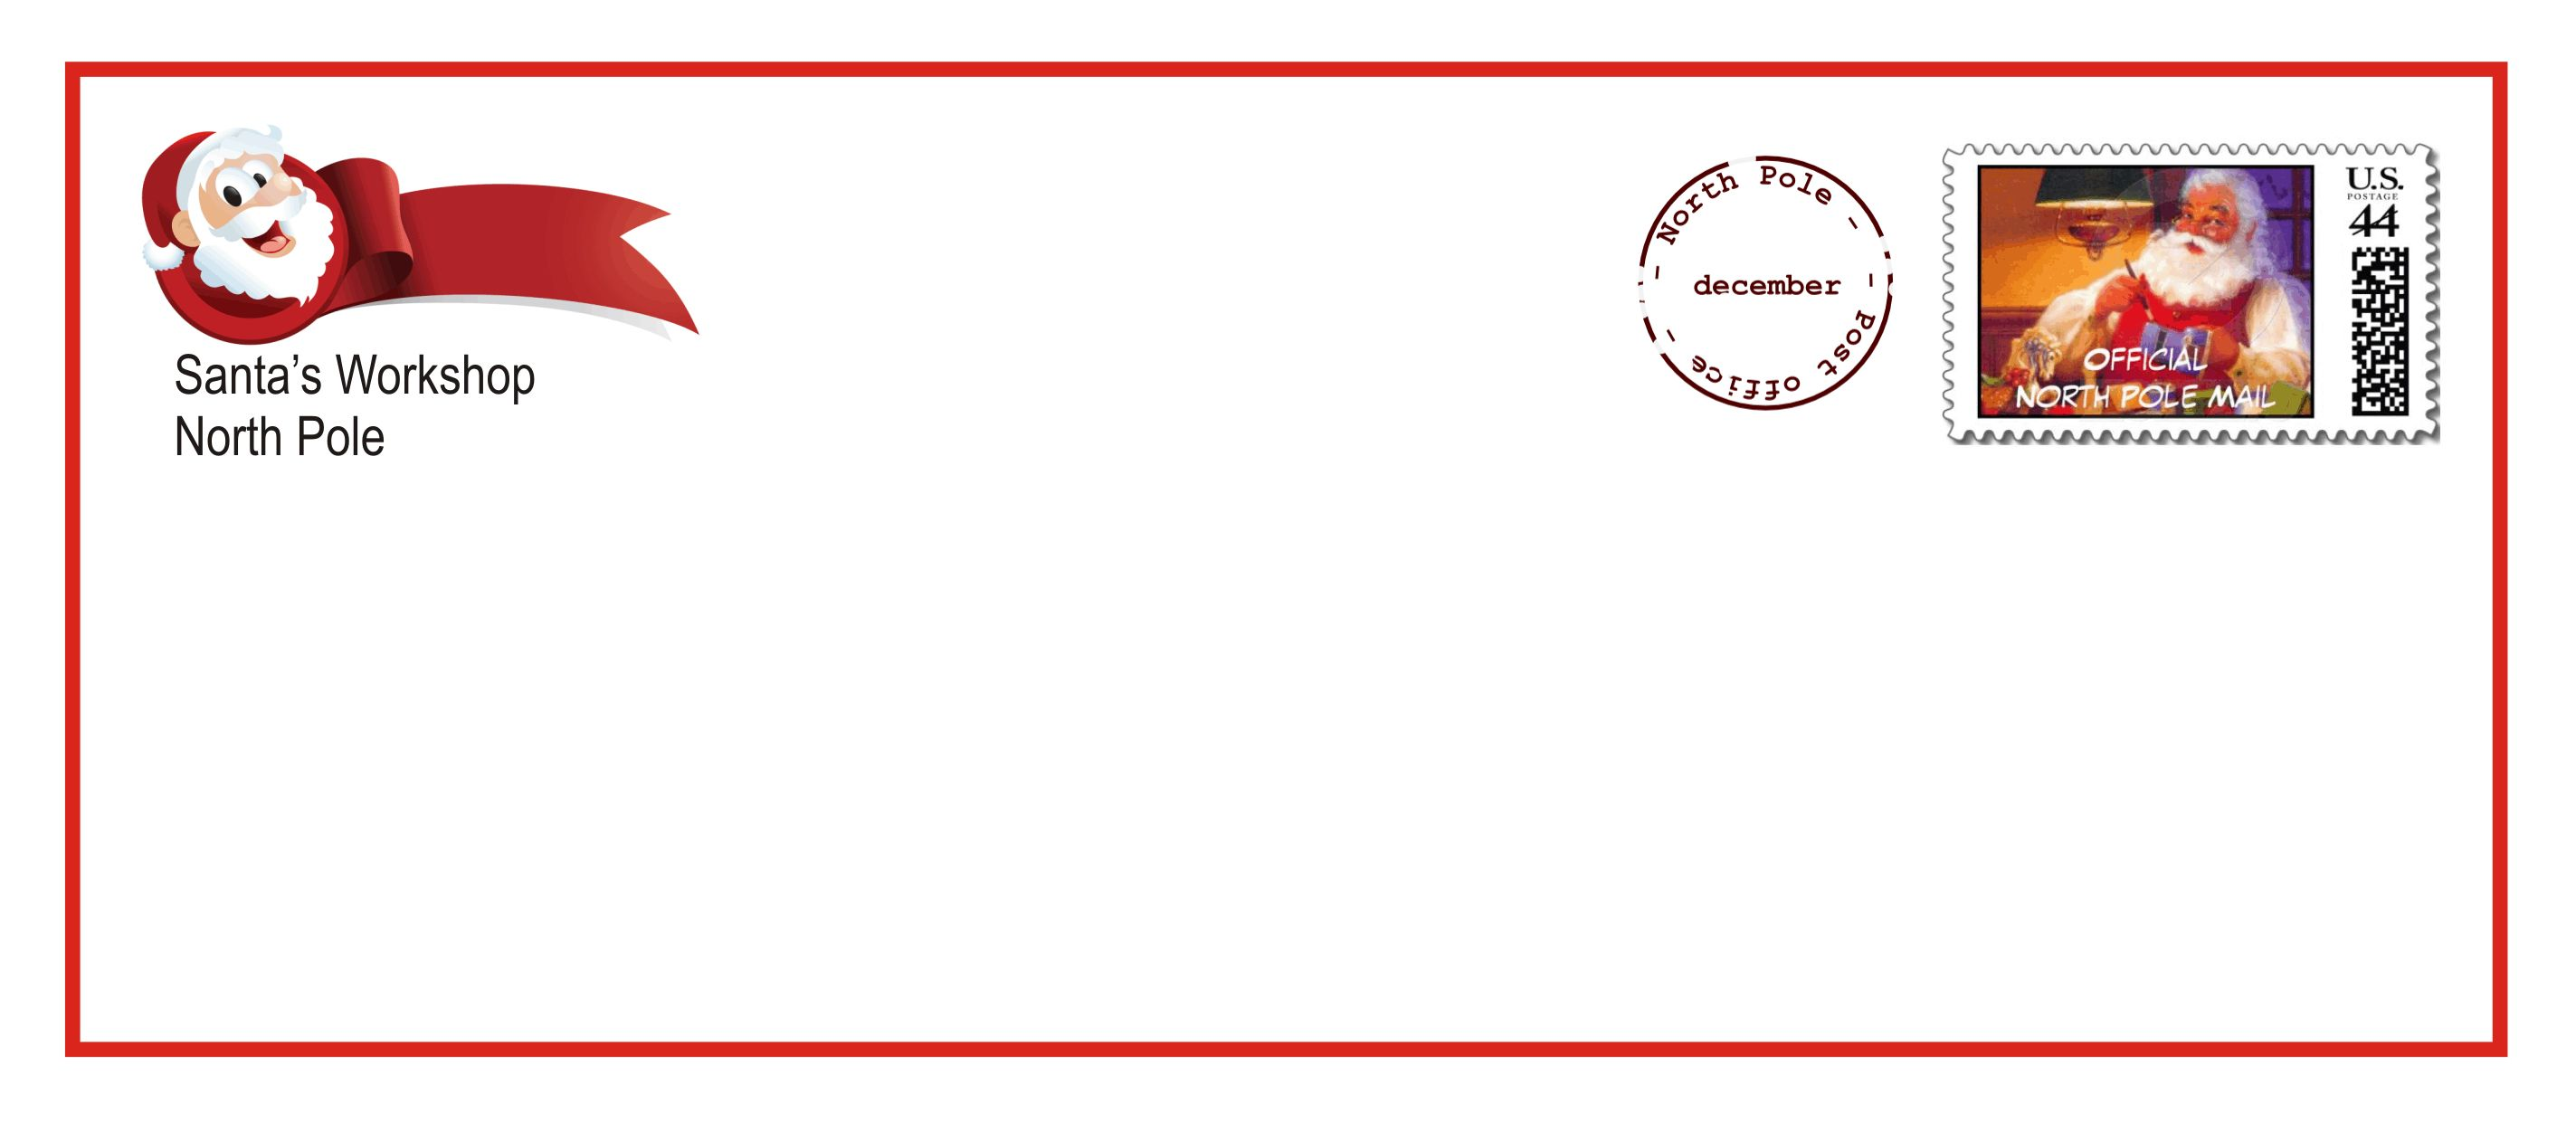 Printable Santa Letter Envelopes That Come With The Upgraded Letter